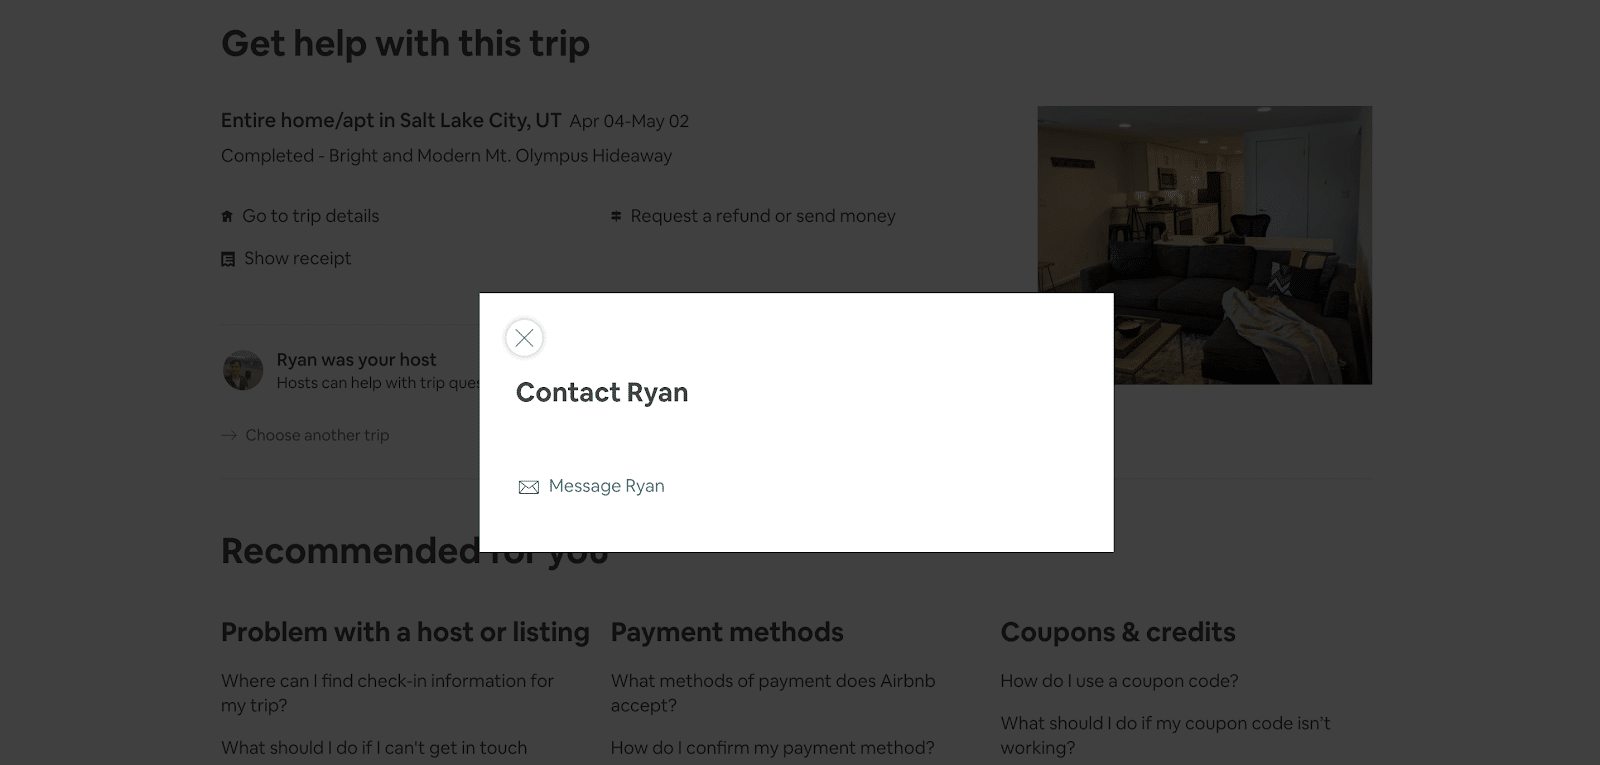 Airbnb phone number: the pop up window to contact your host on Airbnb